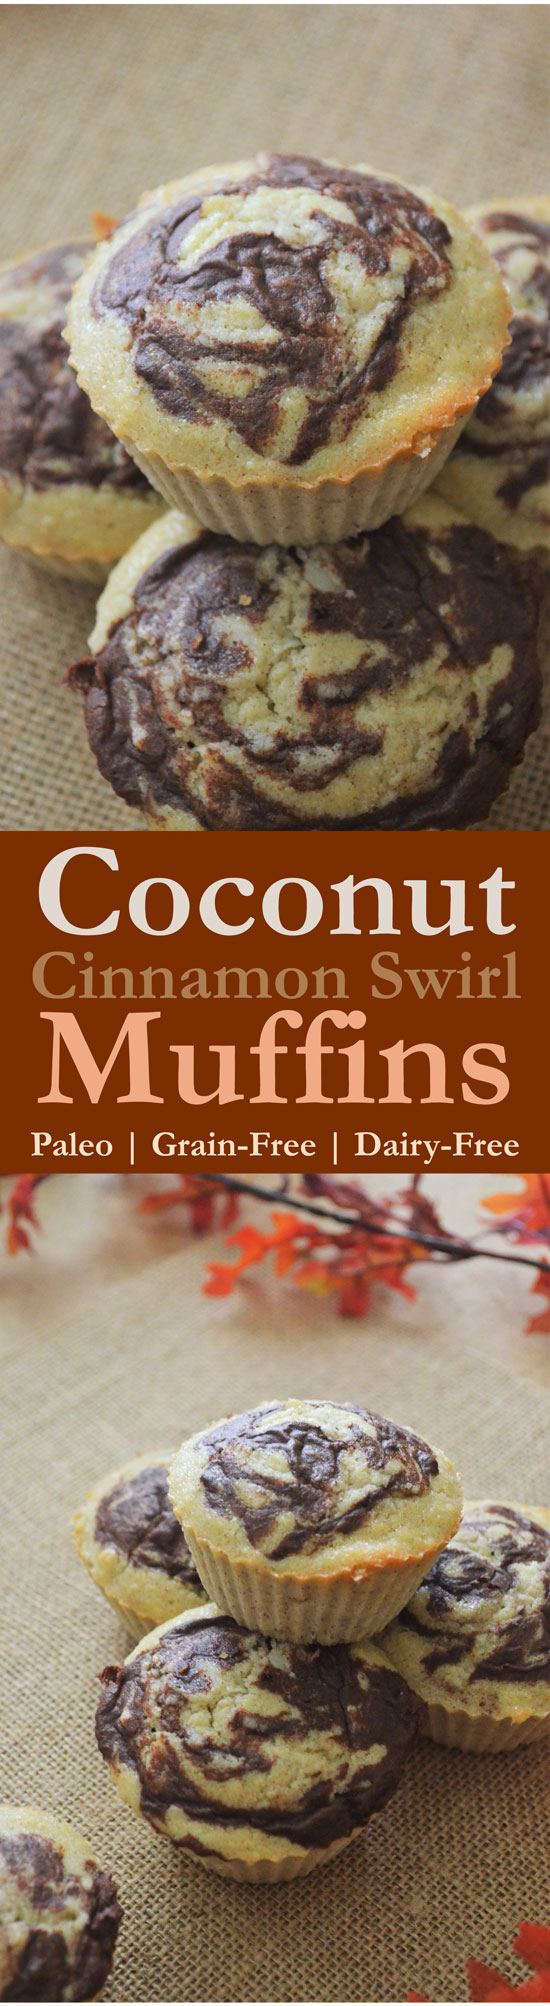 coconut cinnamon swirl muffins gluten-free grain-free low-carb dairy free paleo